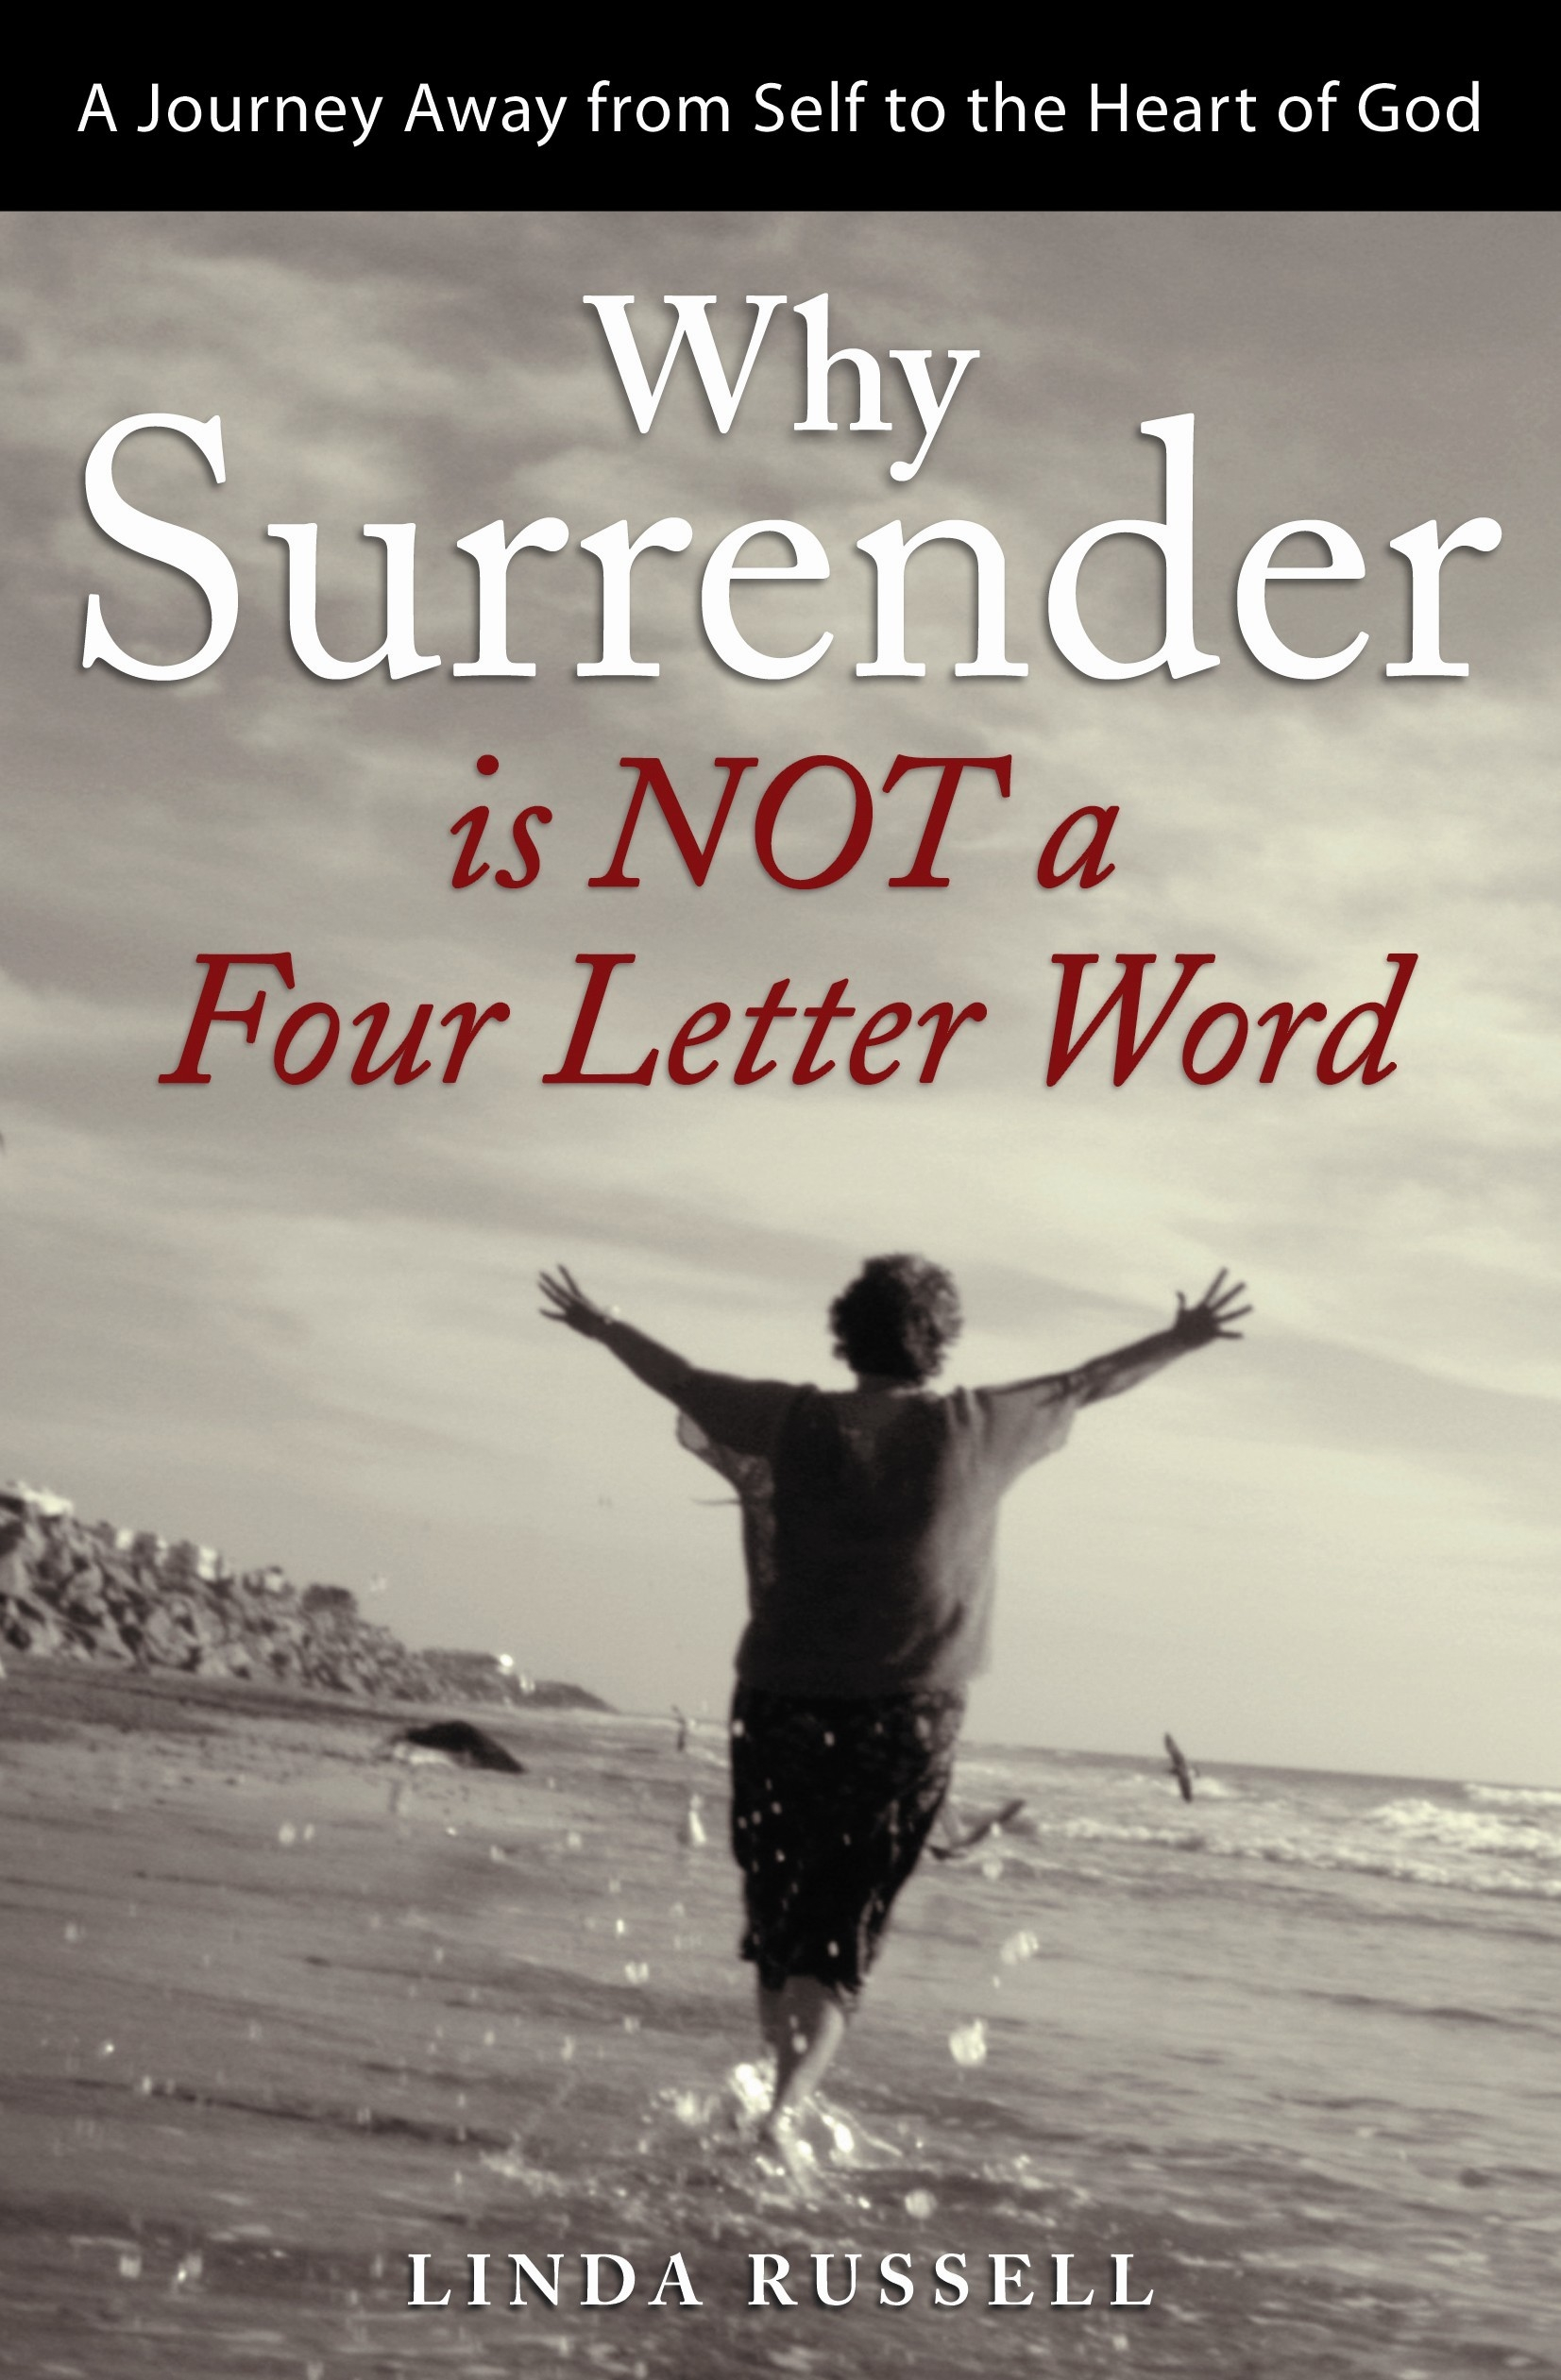 Why Surrender Front Cover1 300dpi